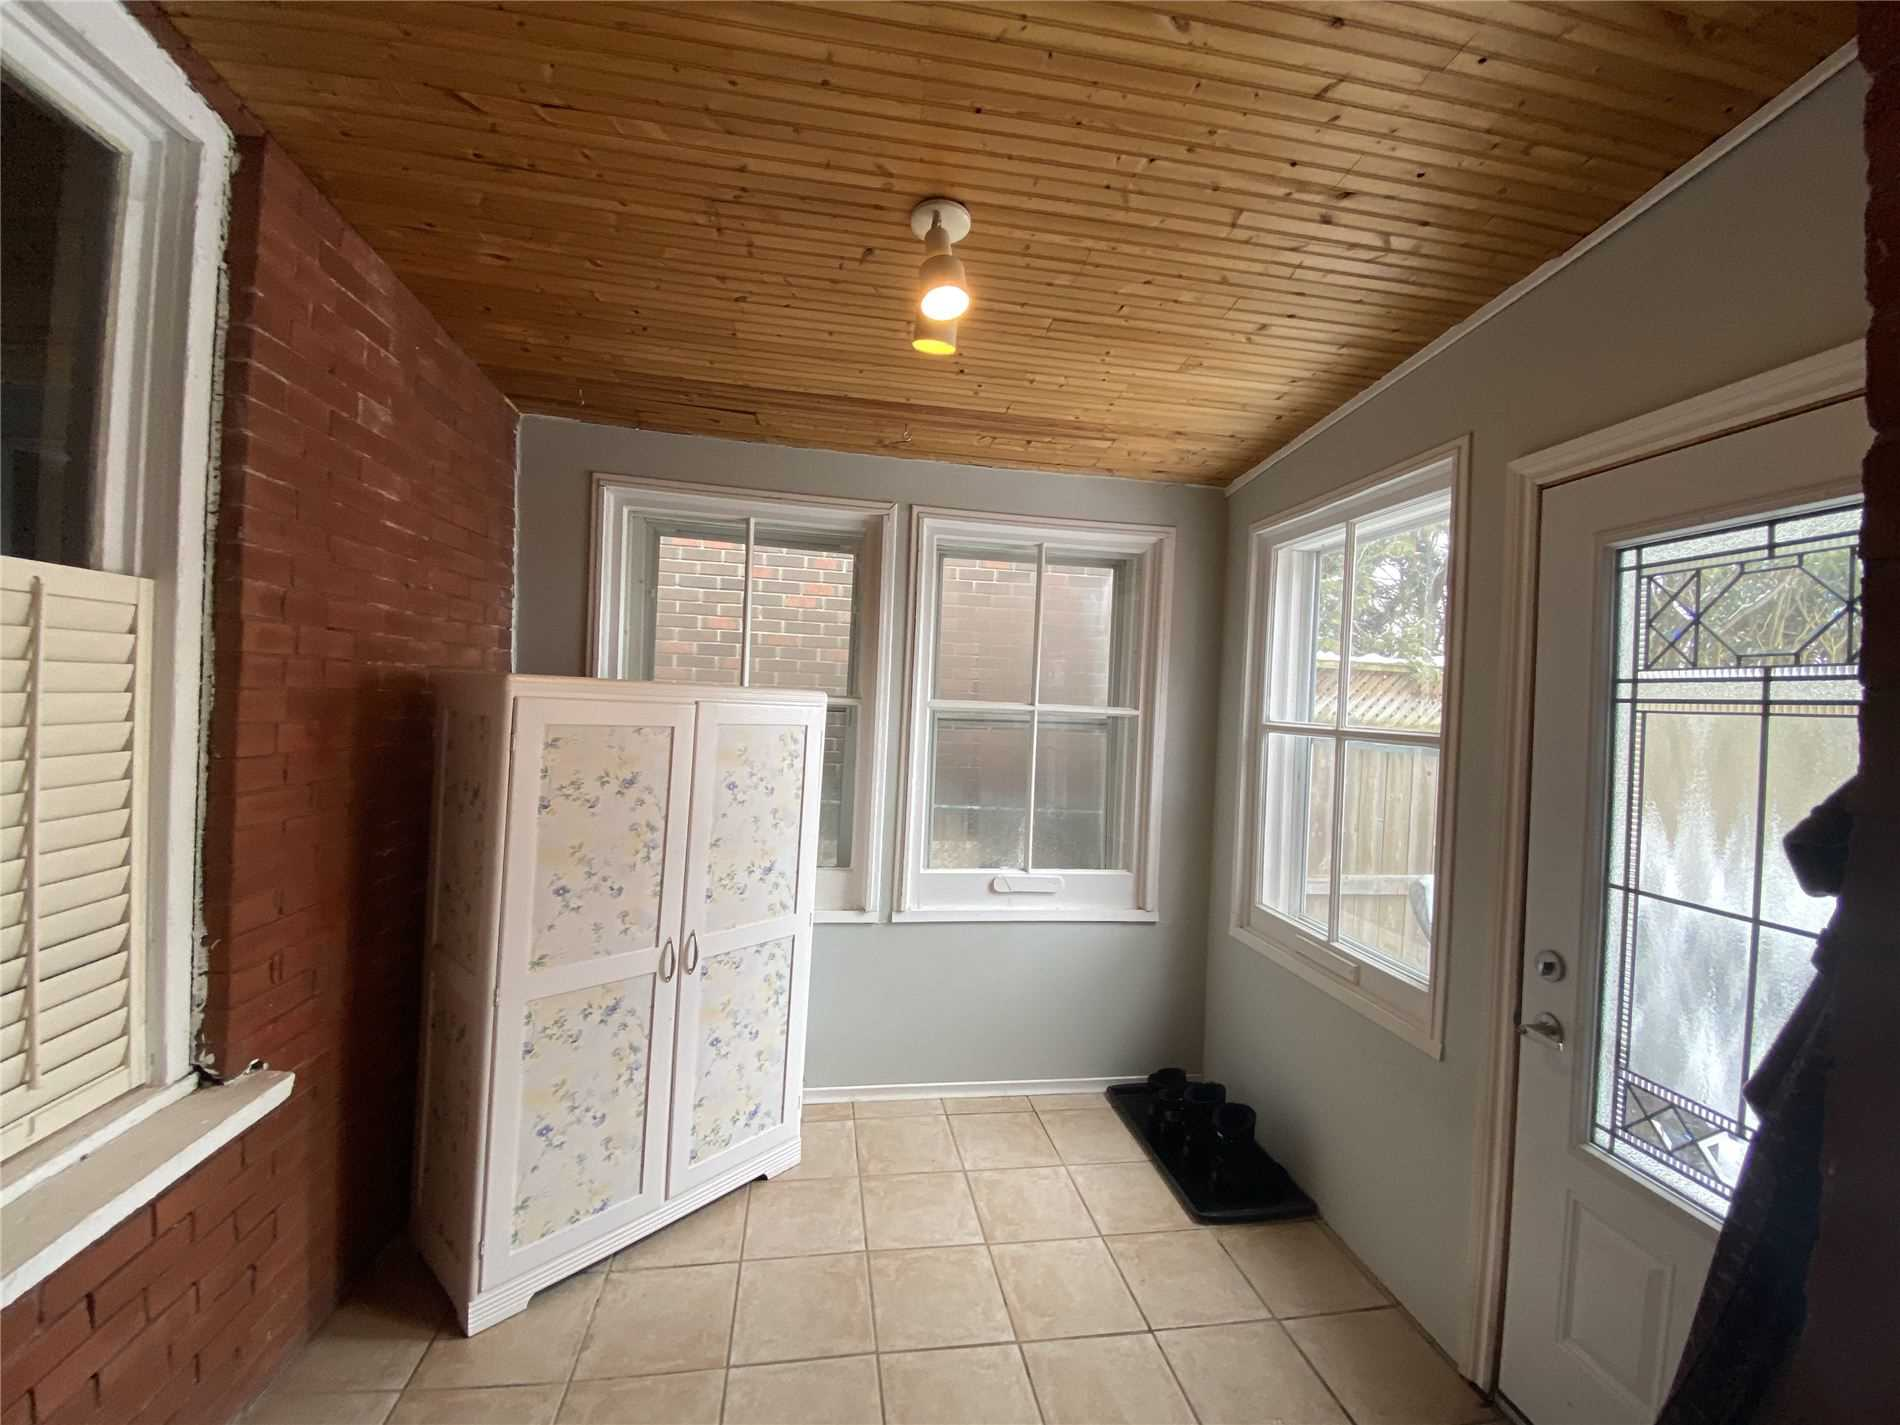 Image 7 of 8 showing inside of 2 Bedroom Detached Bungalow house for sale at 88 Delhi St, Guelph N1E4J7